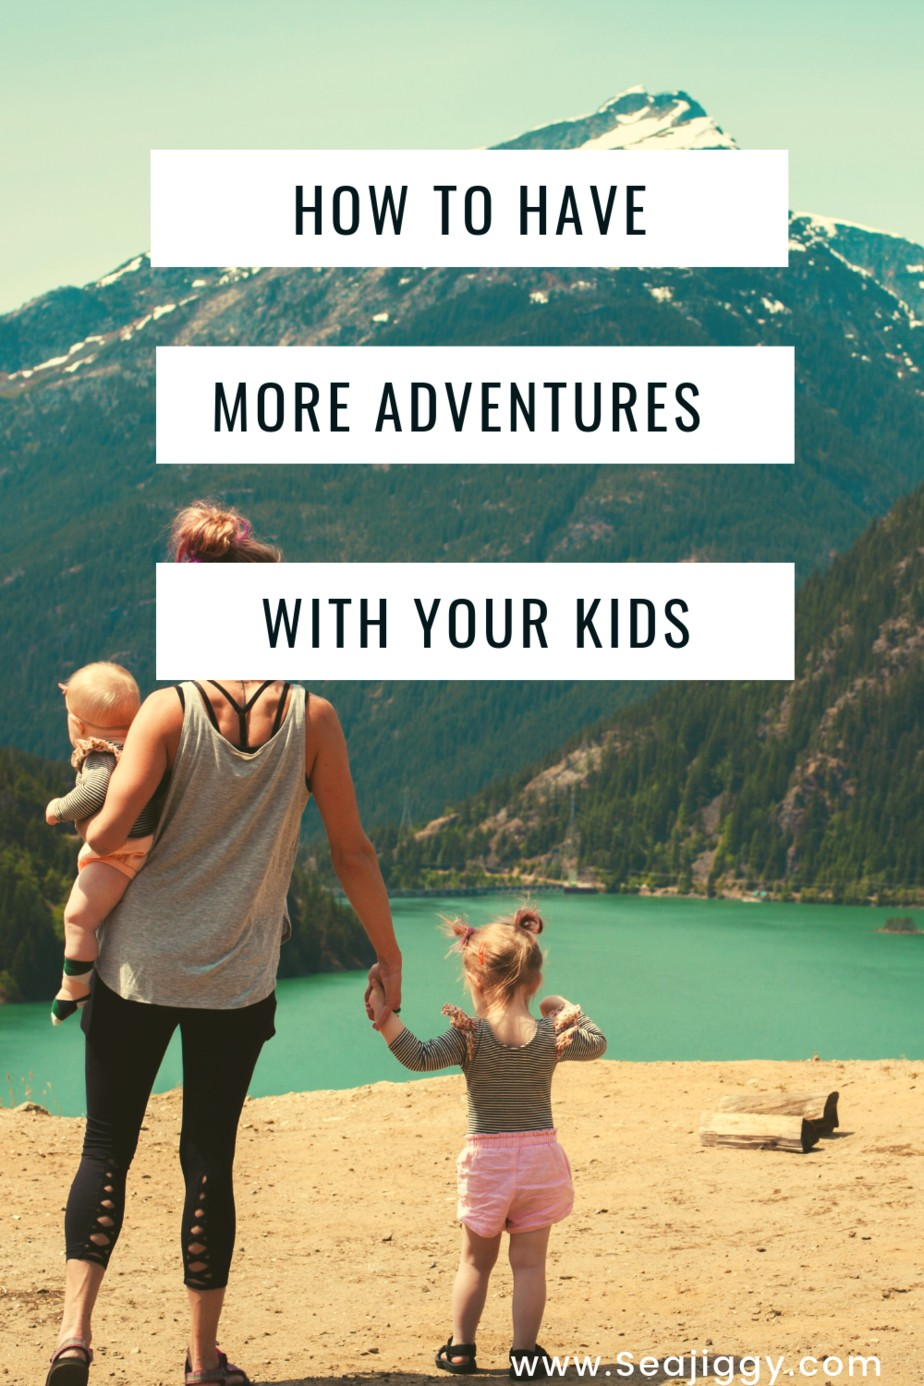 How to have more adventures with your kids